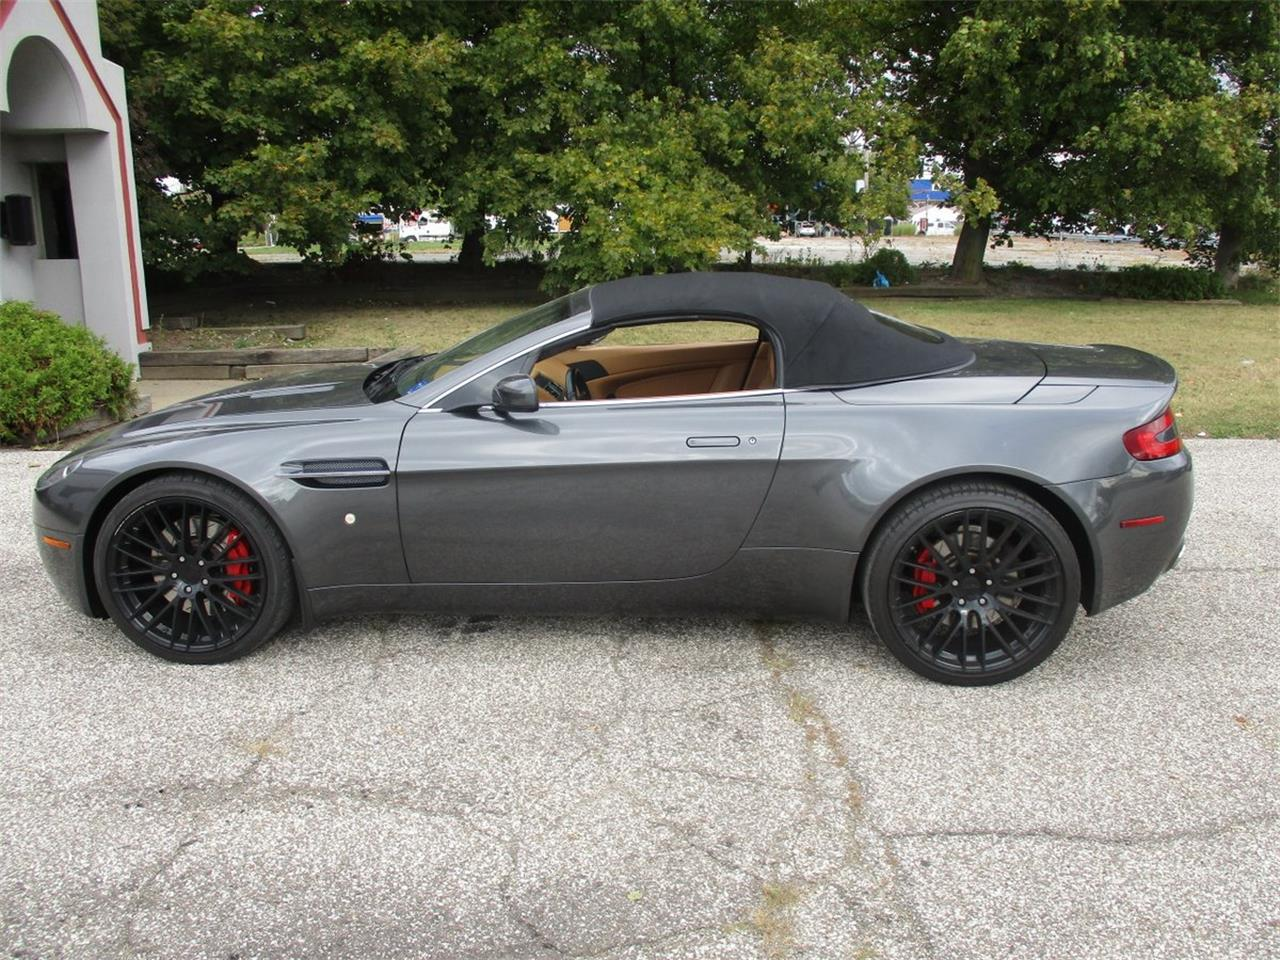 Large Picture of '09 Aston Martin V8 Vantage Roadster located in Bedford Heights Ohio - $49,500.00 - M5PD